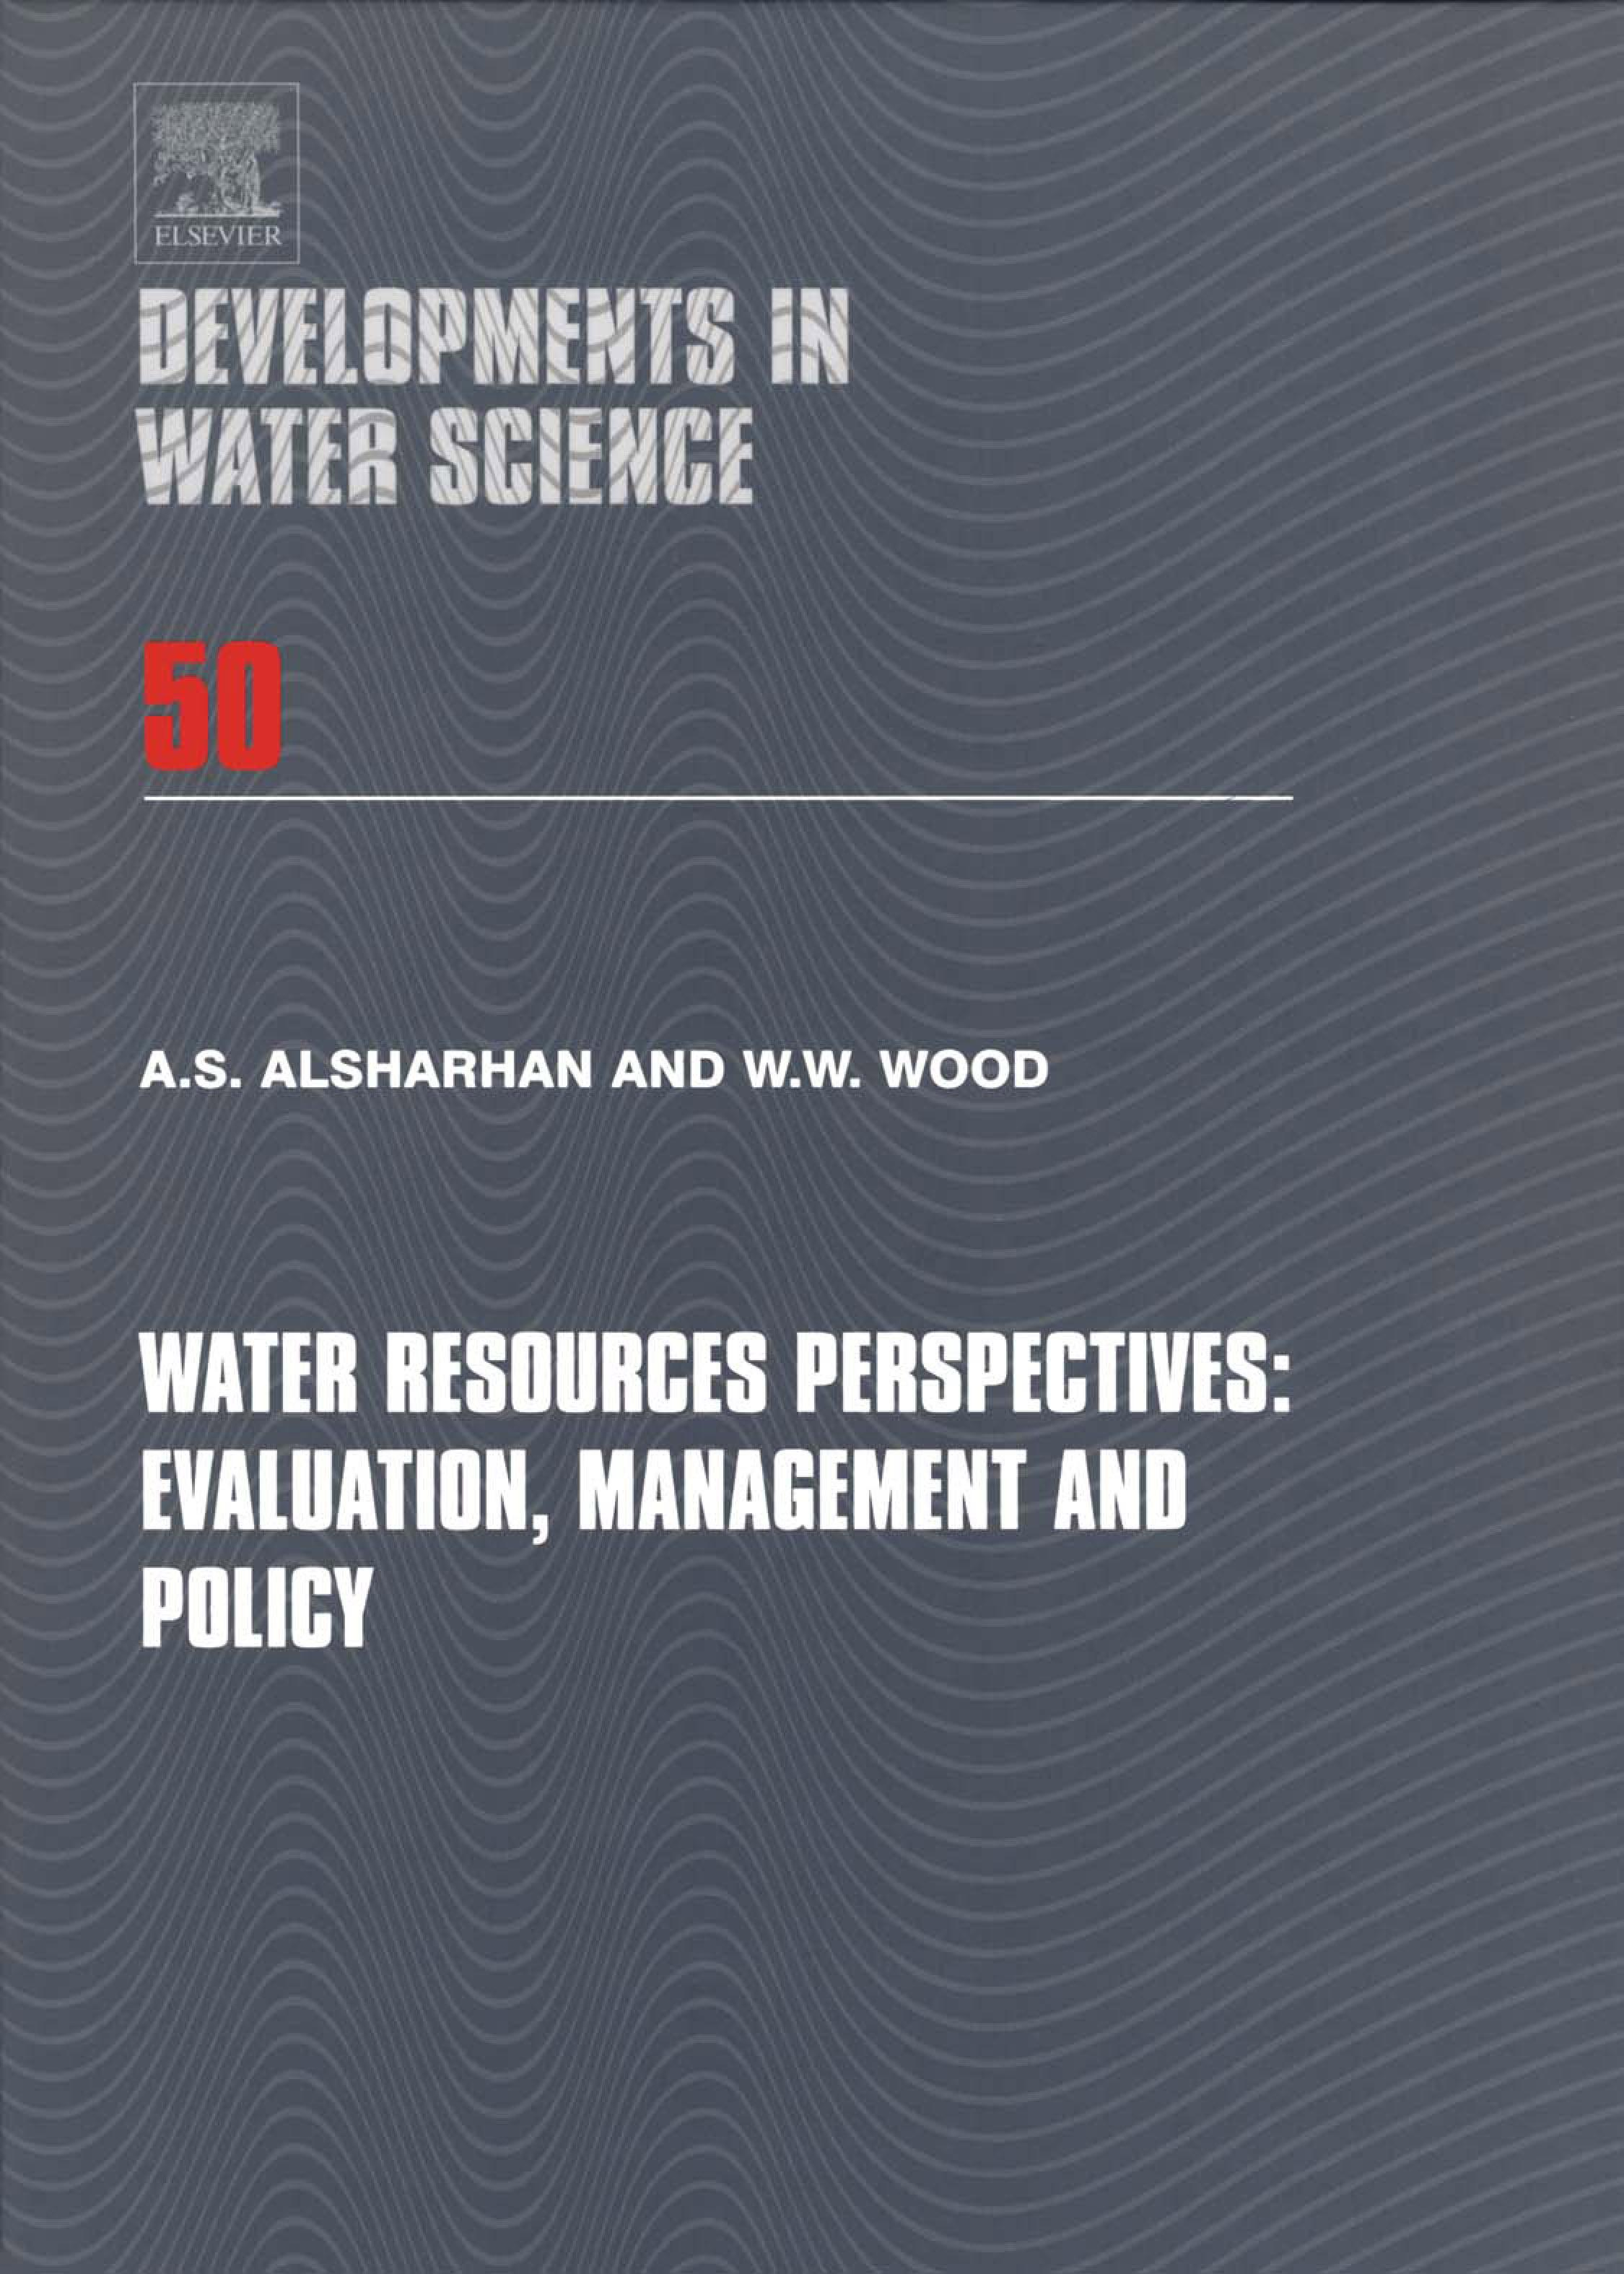 Water Resources Perspectives: Evaluation, Management and Policy: Evaluation, Management and Policy